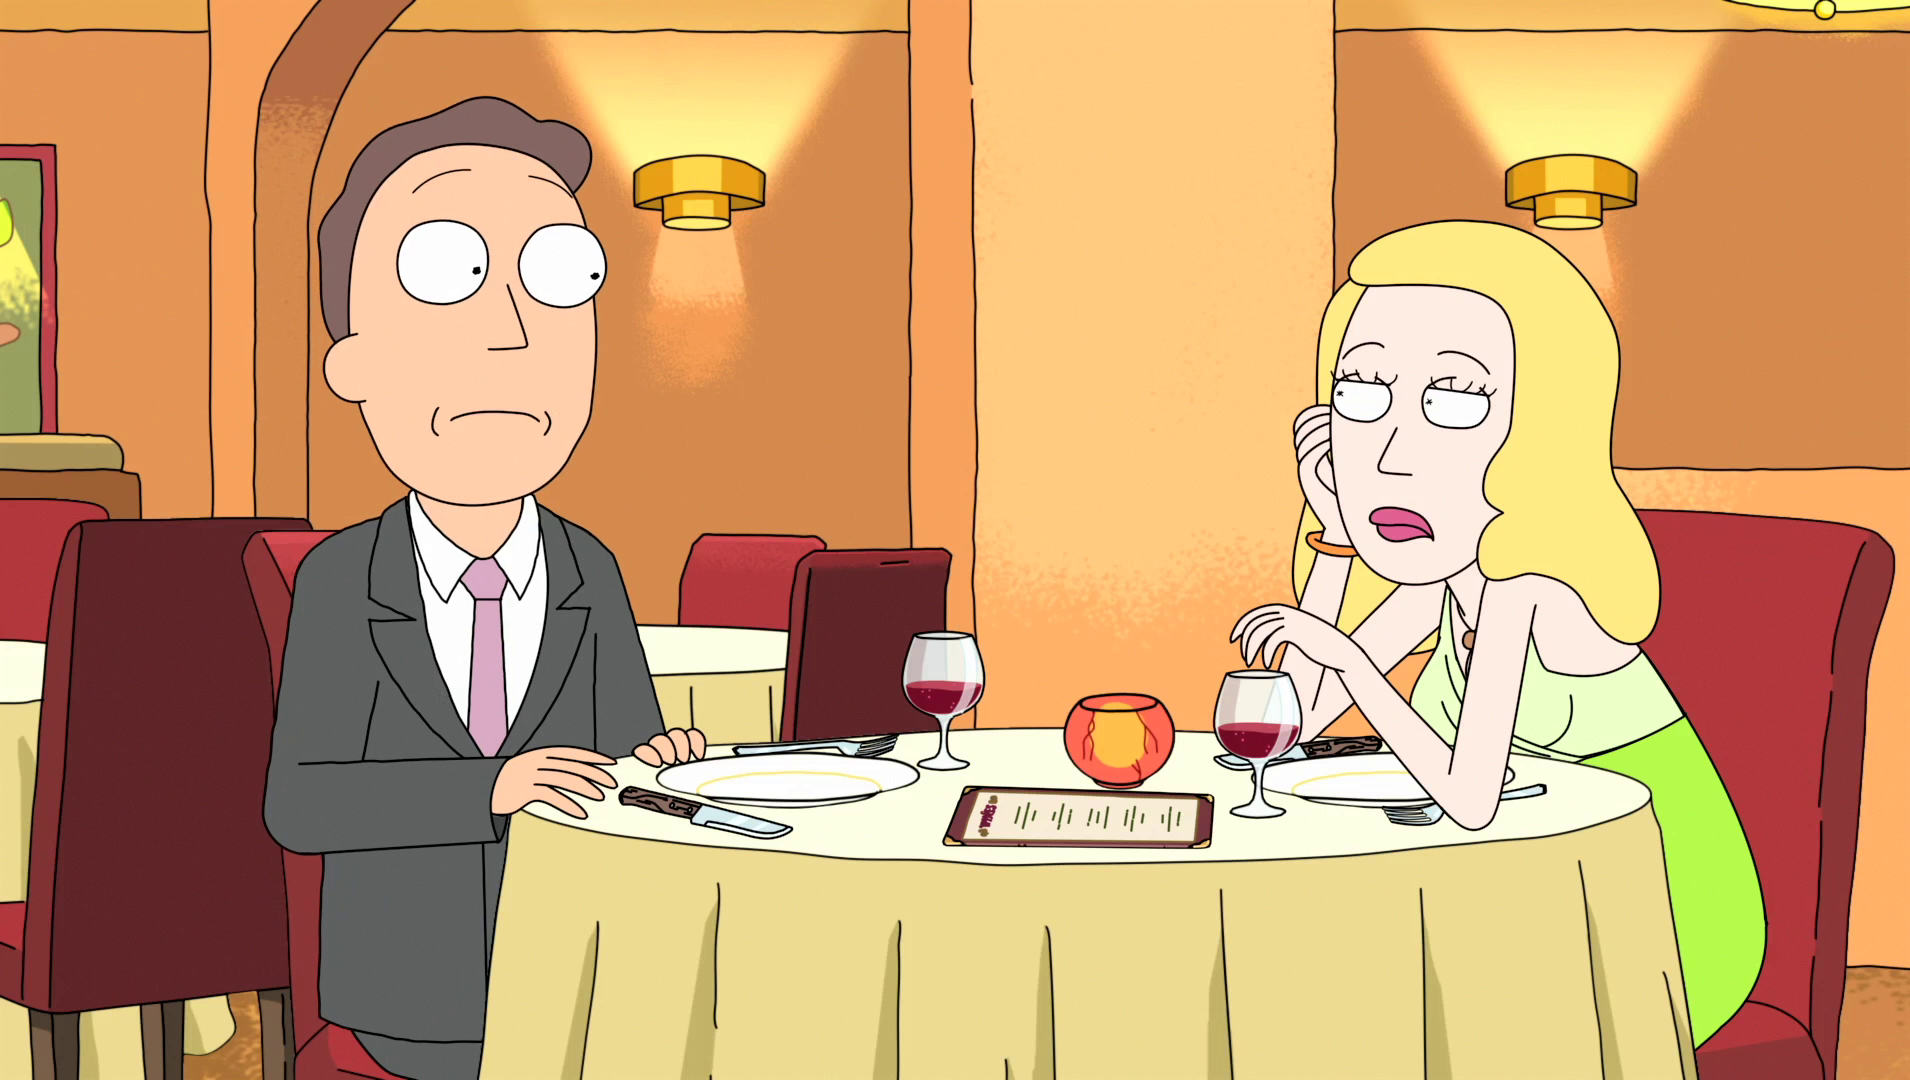 Best Rick And Morty Quotes 8 'rick And Morty' Scenes That Validate Beth And Jerry's Divorce